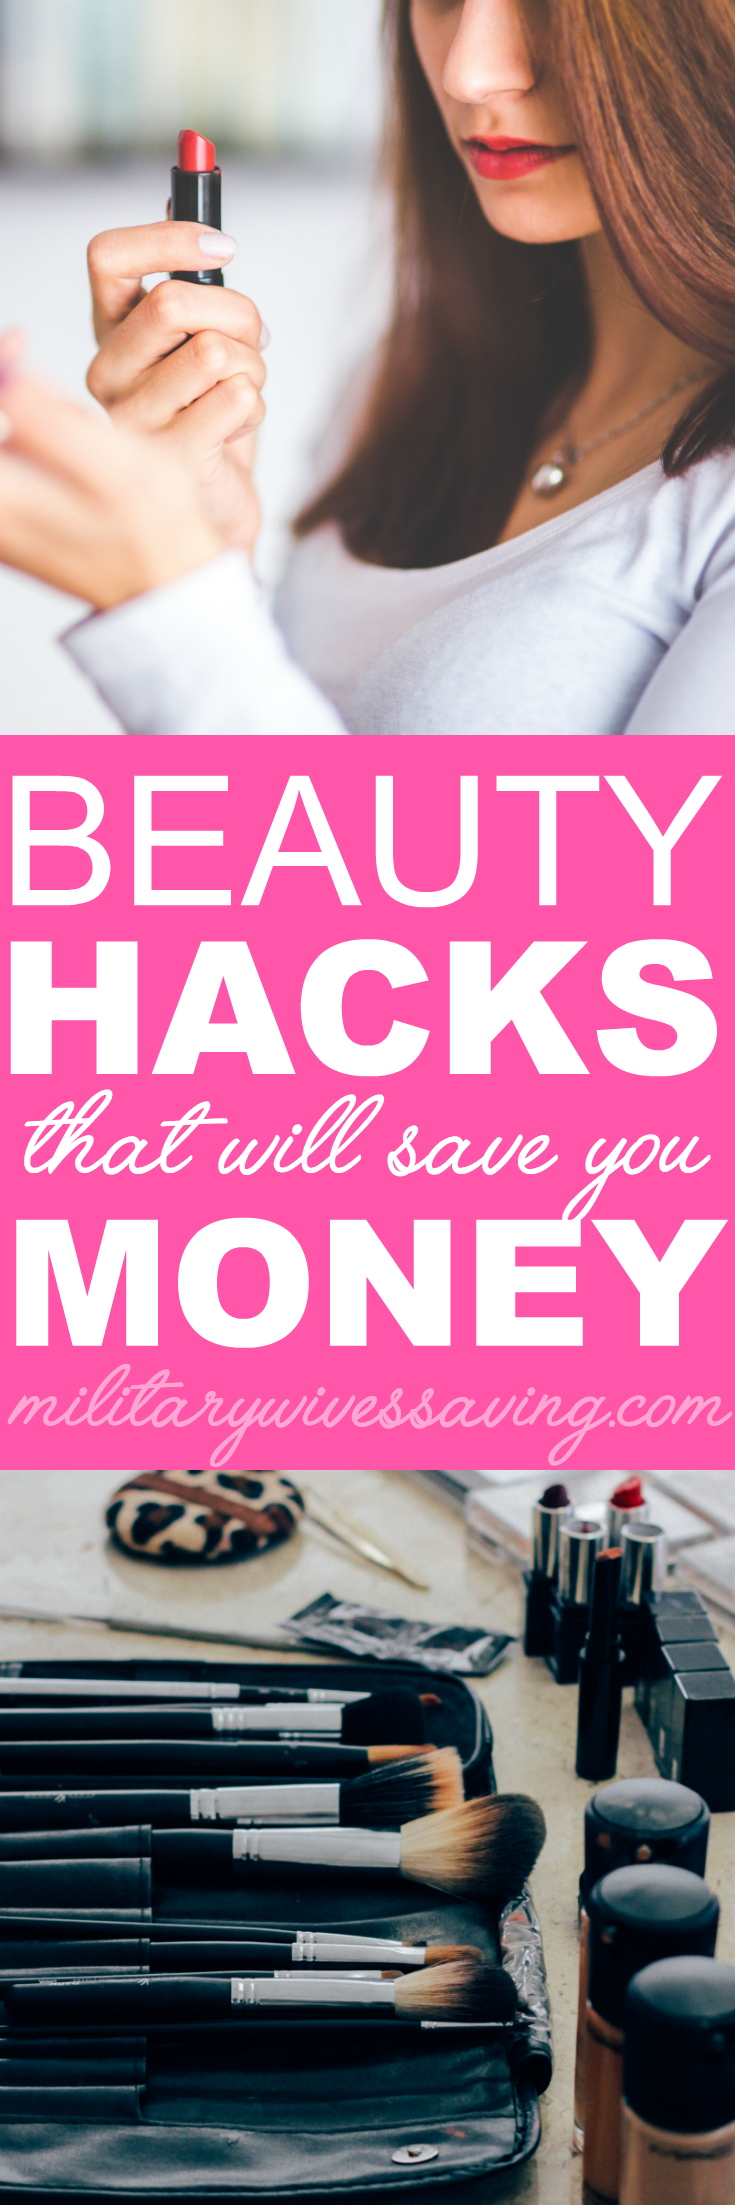 Clever beauty Hacks that can help you save money